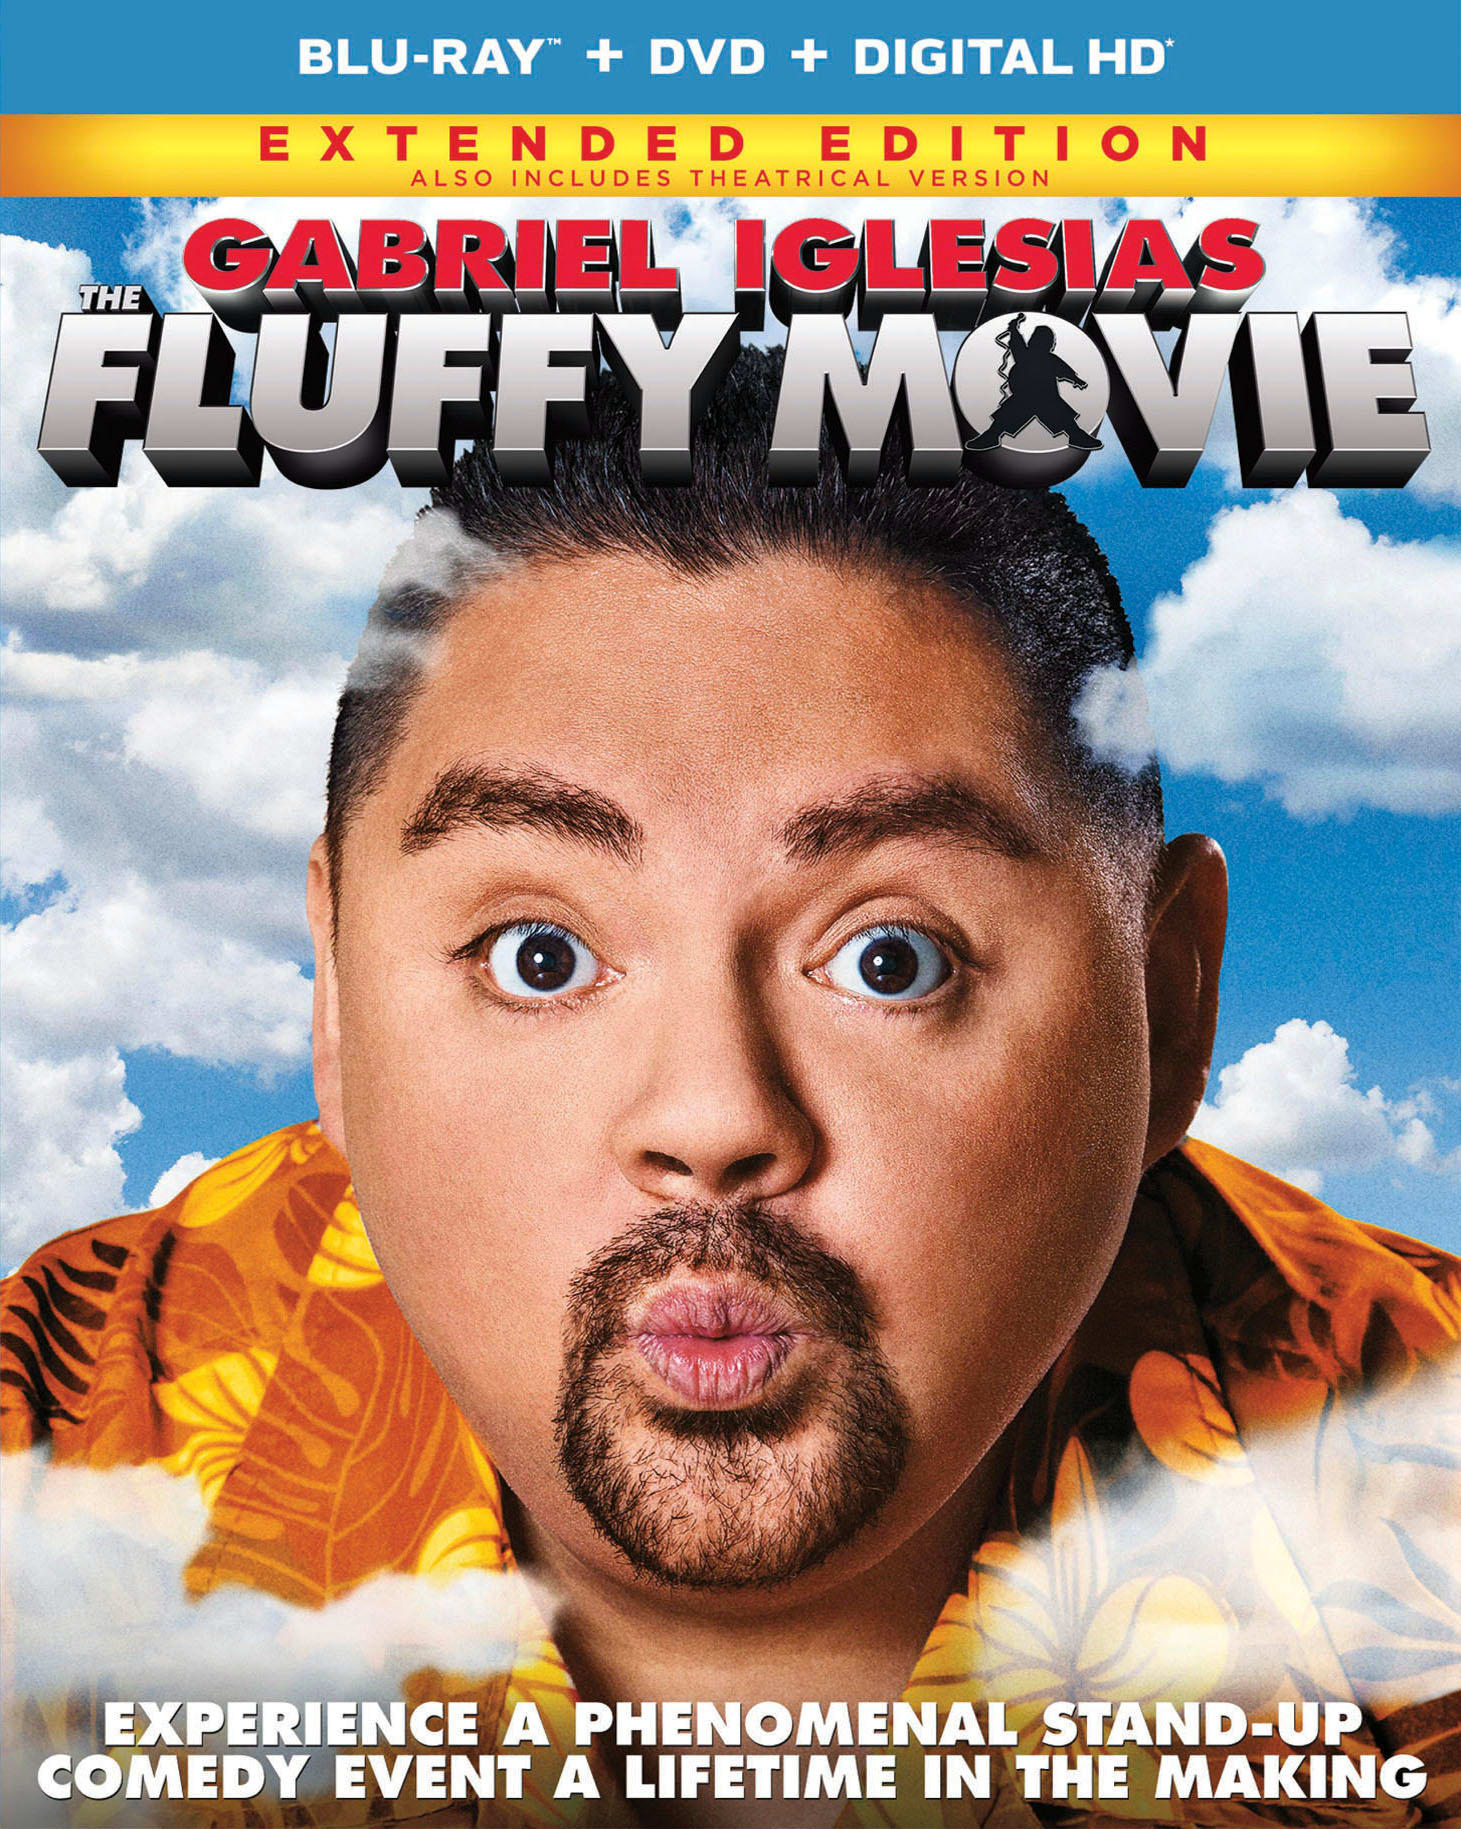 The Fluffy Movie (Extended Edition DVD + Digital) [Blu-ray]